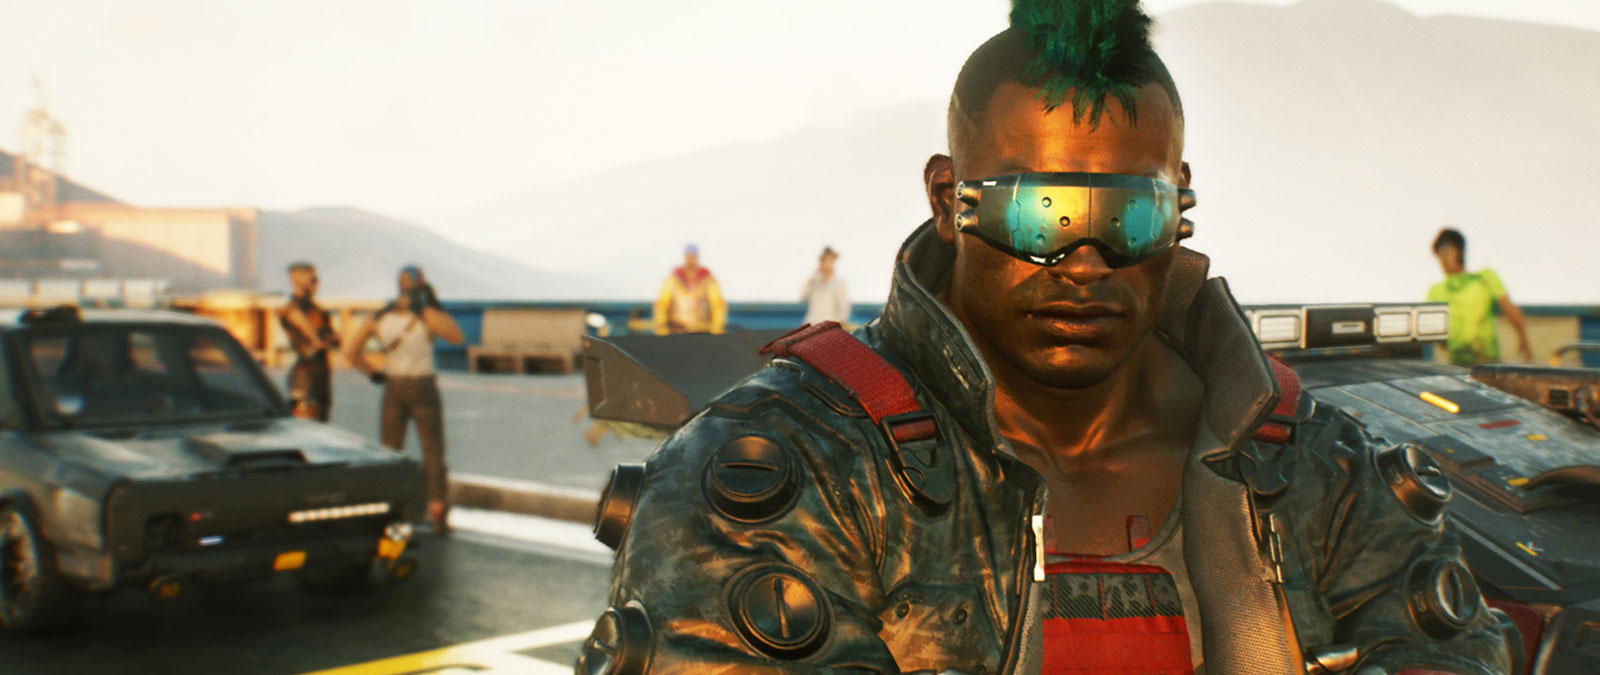 A man with a green mohawk and cyber goggles stands on the docks